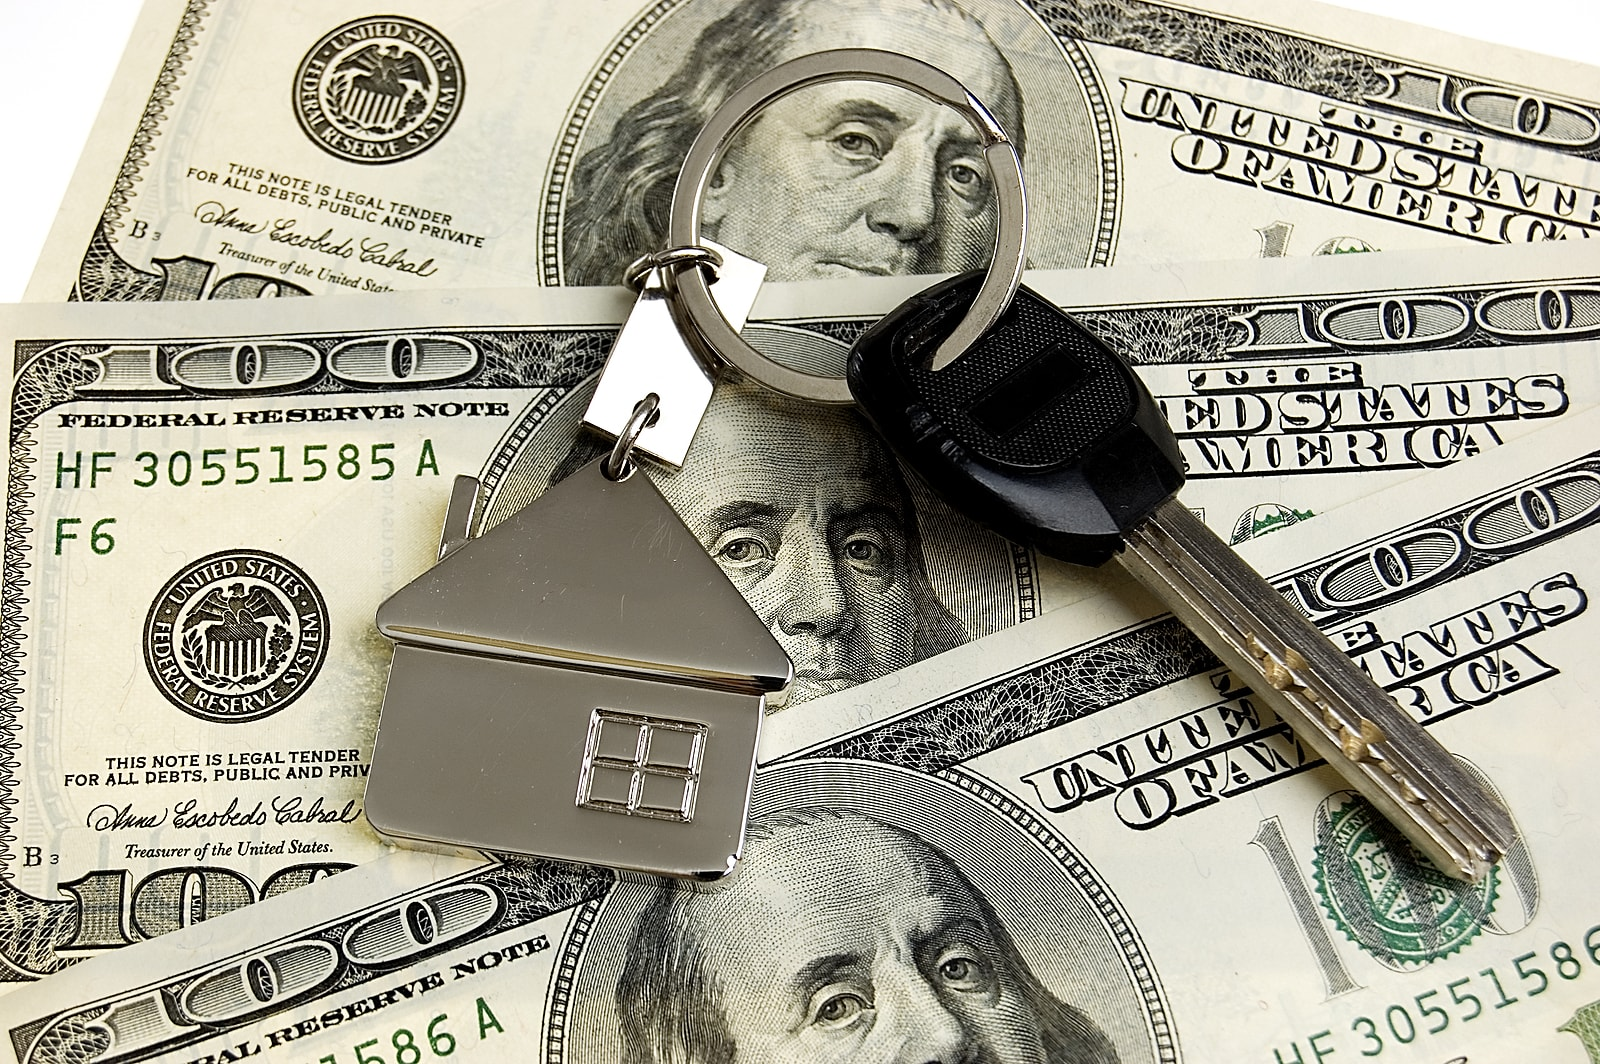 Property Management 101 – Tips for creating a Win/Win Situation in Cash for Keys agreements.